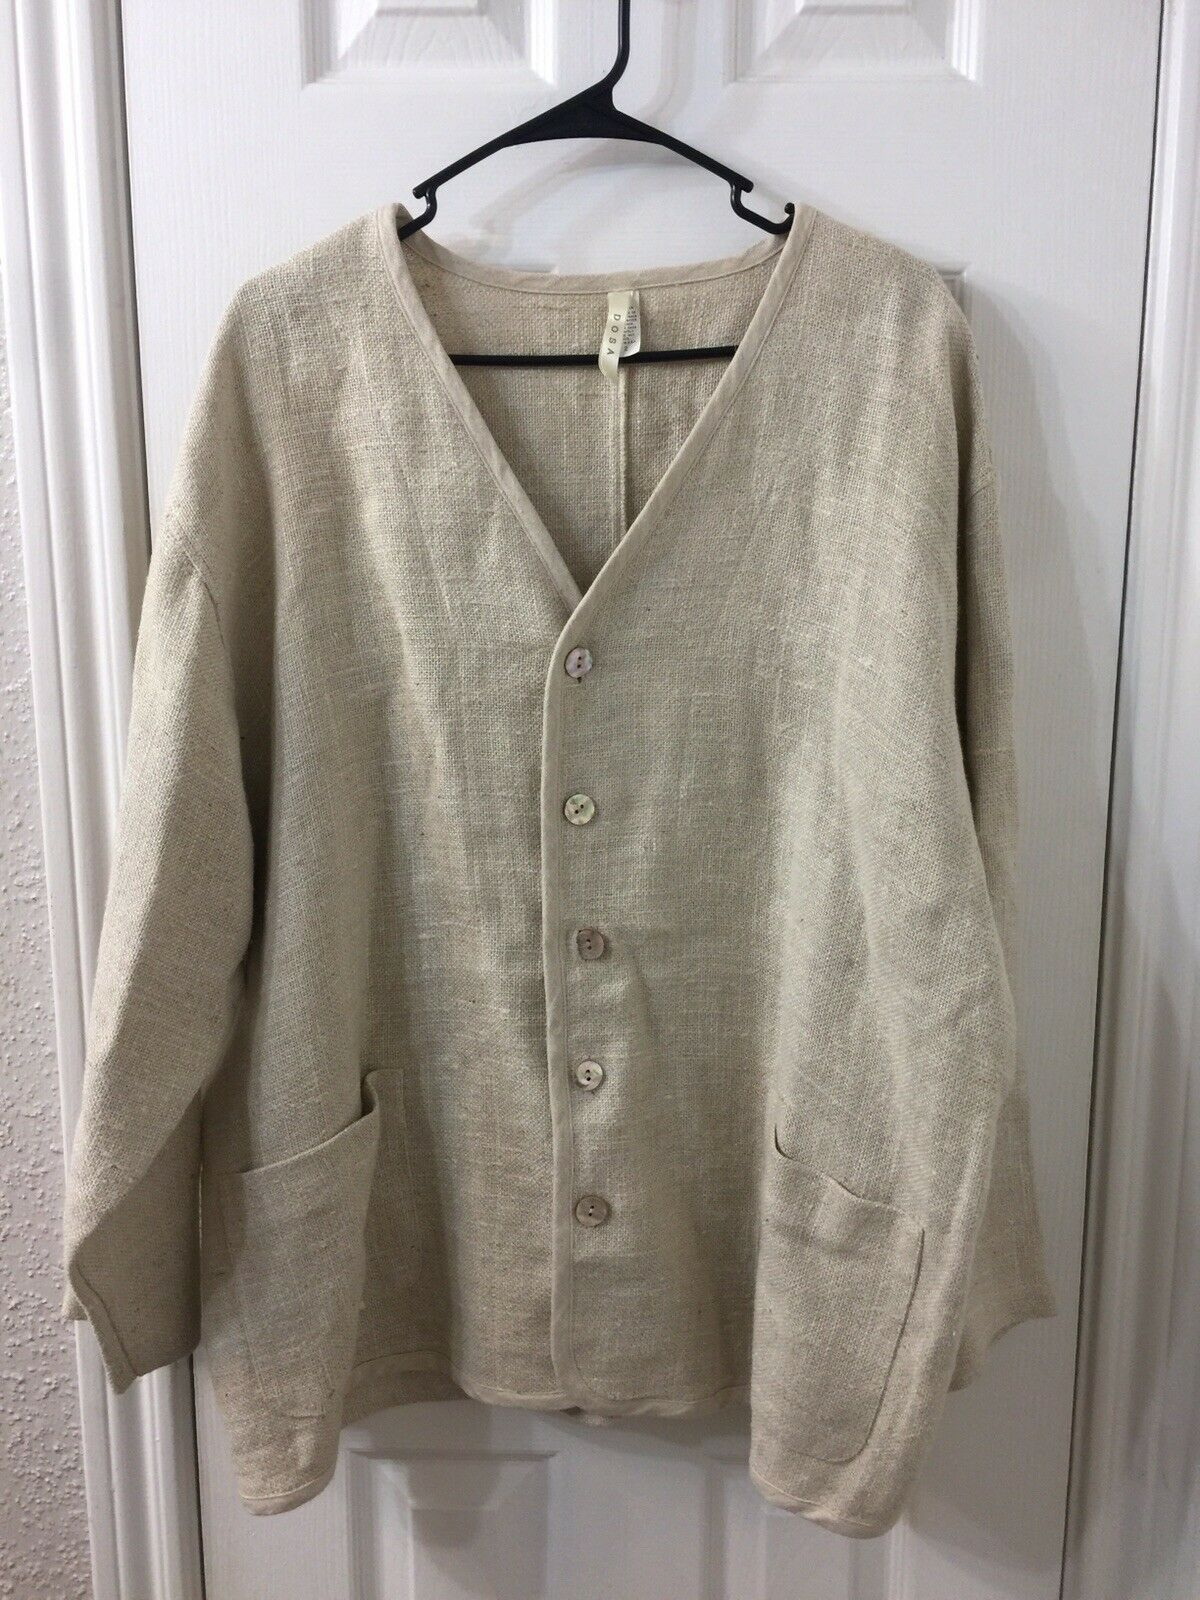 Dosa Linen Long Sleeve Beige Top Sz 2